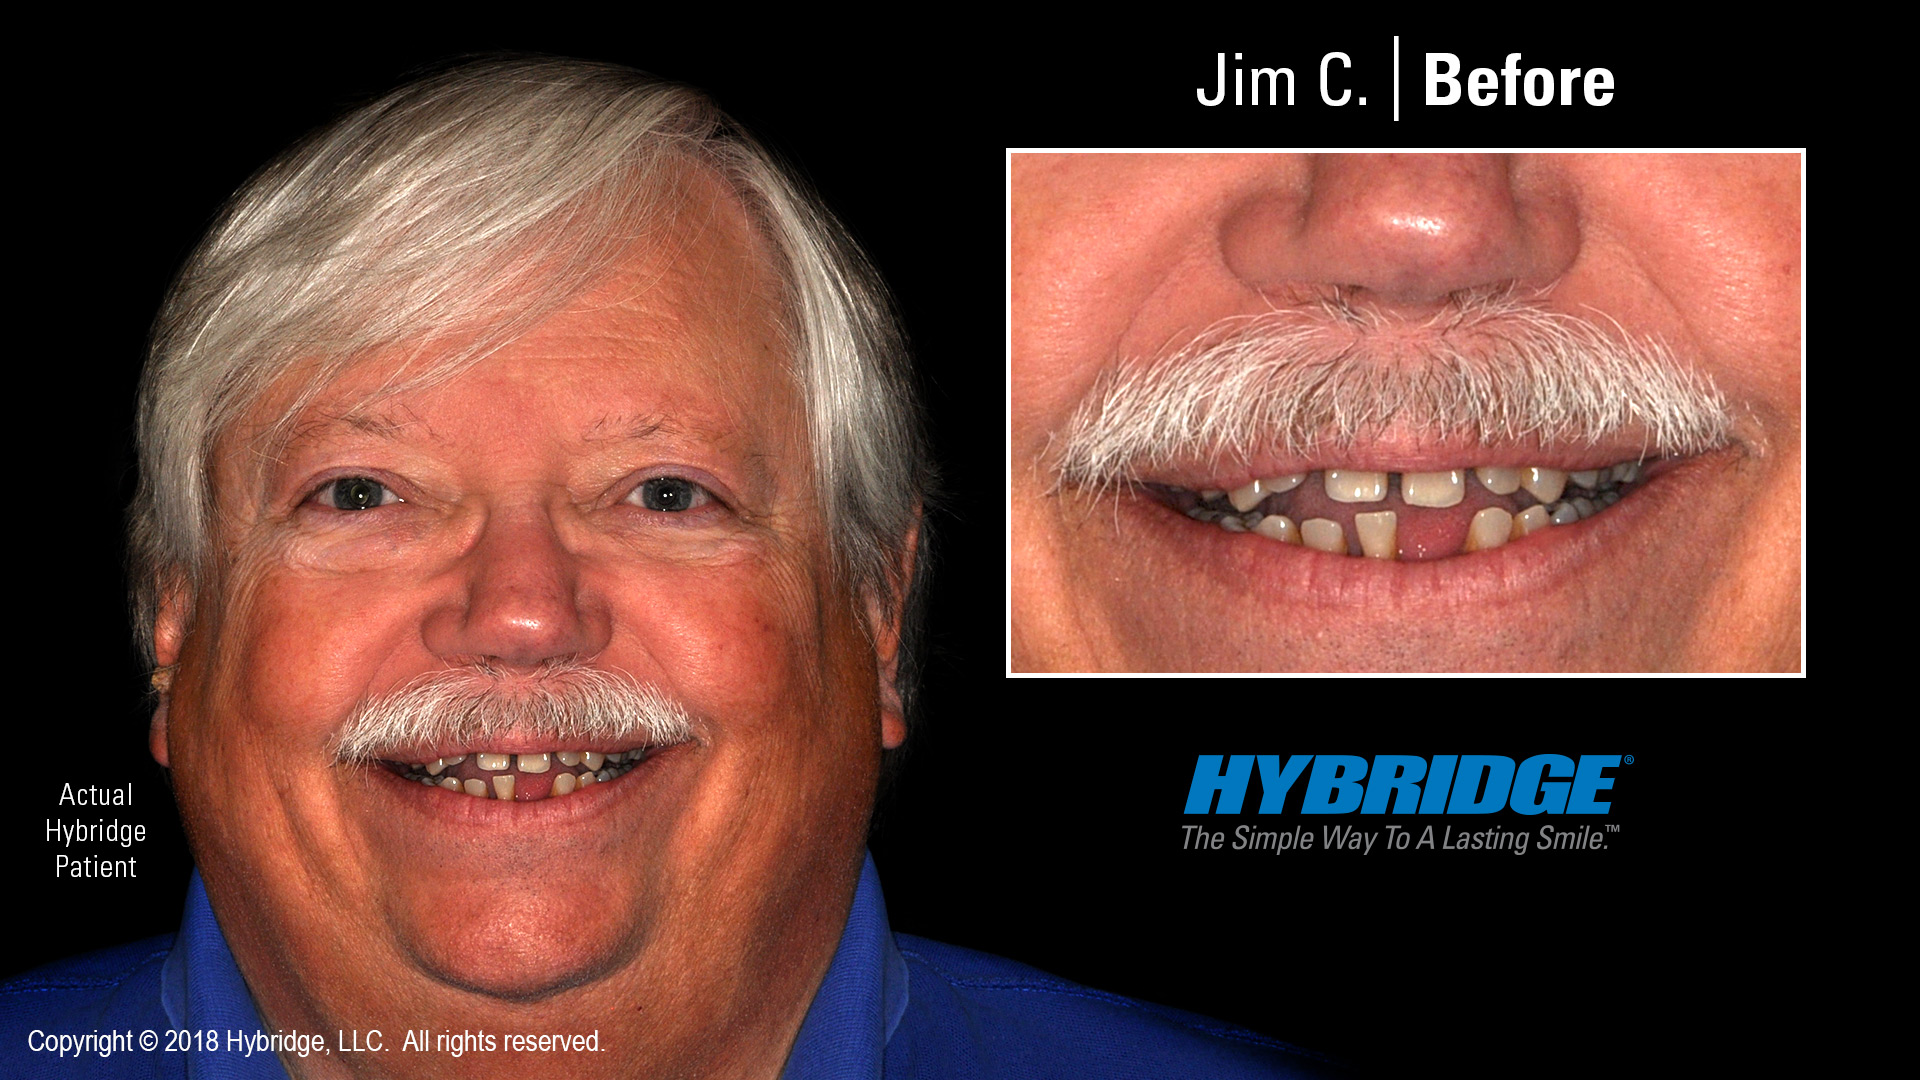 hybridge_jim_c_before.jpg